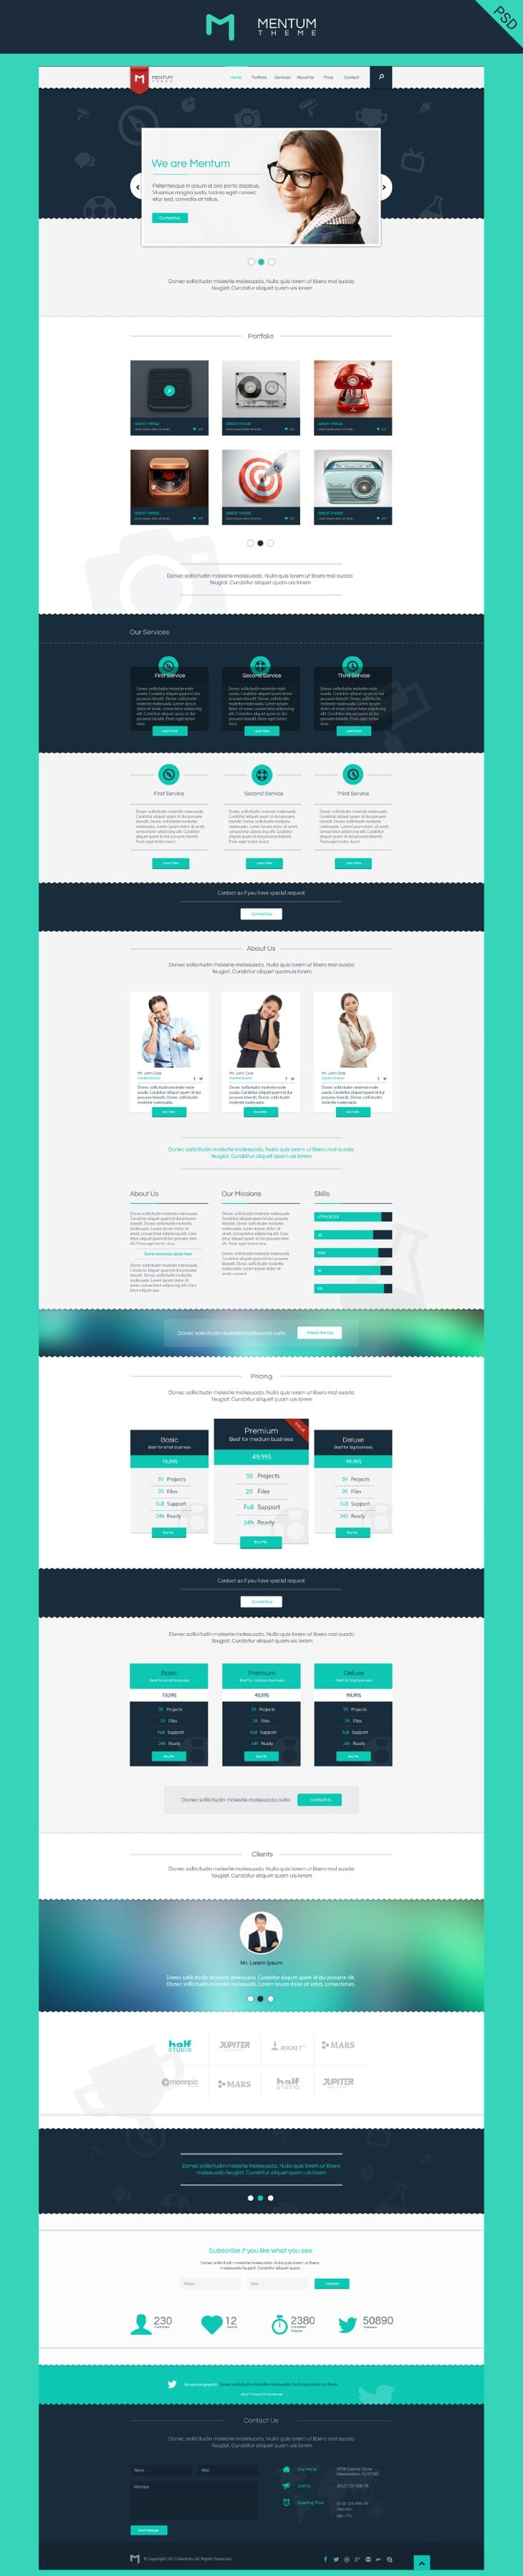 Mentum Single Page Template PSD